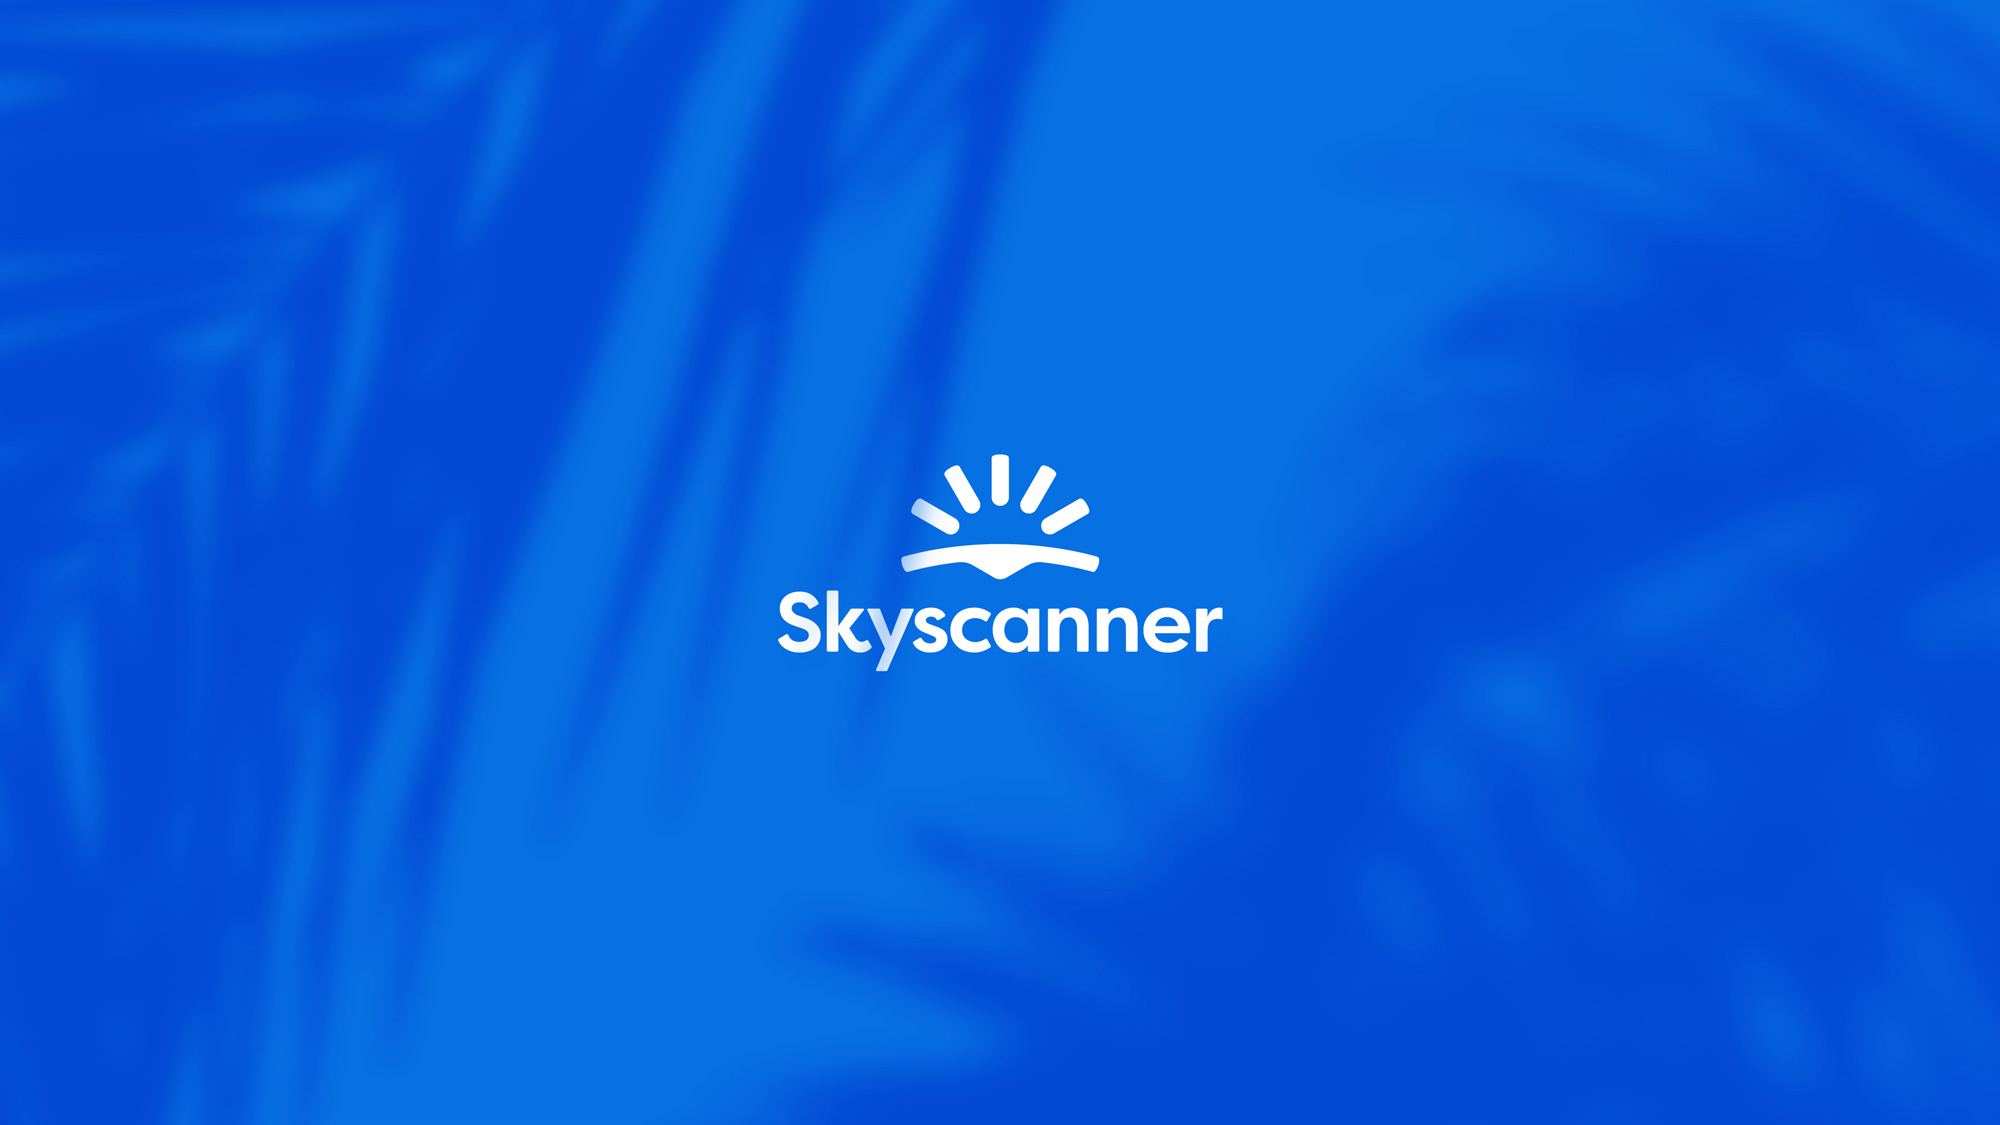 New Logo and Identity for Skyscanner by Koto